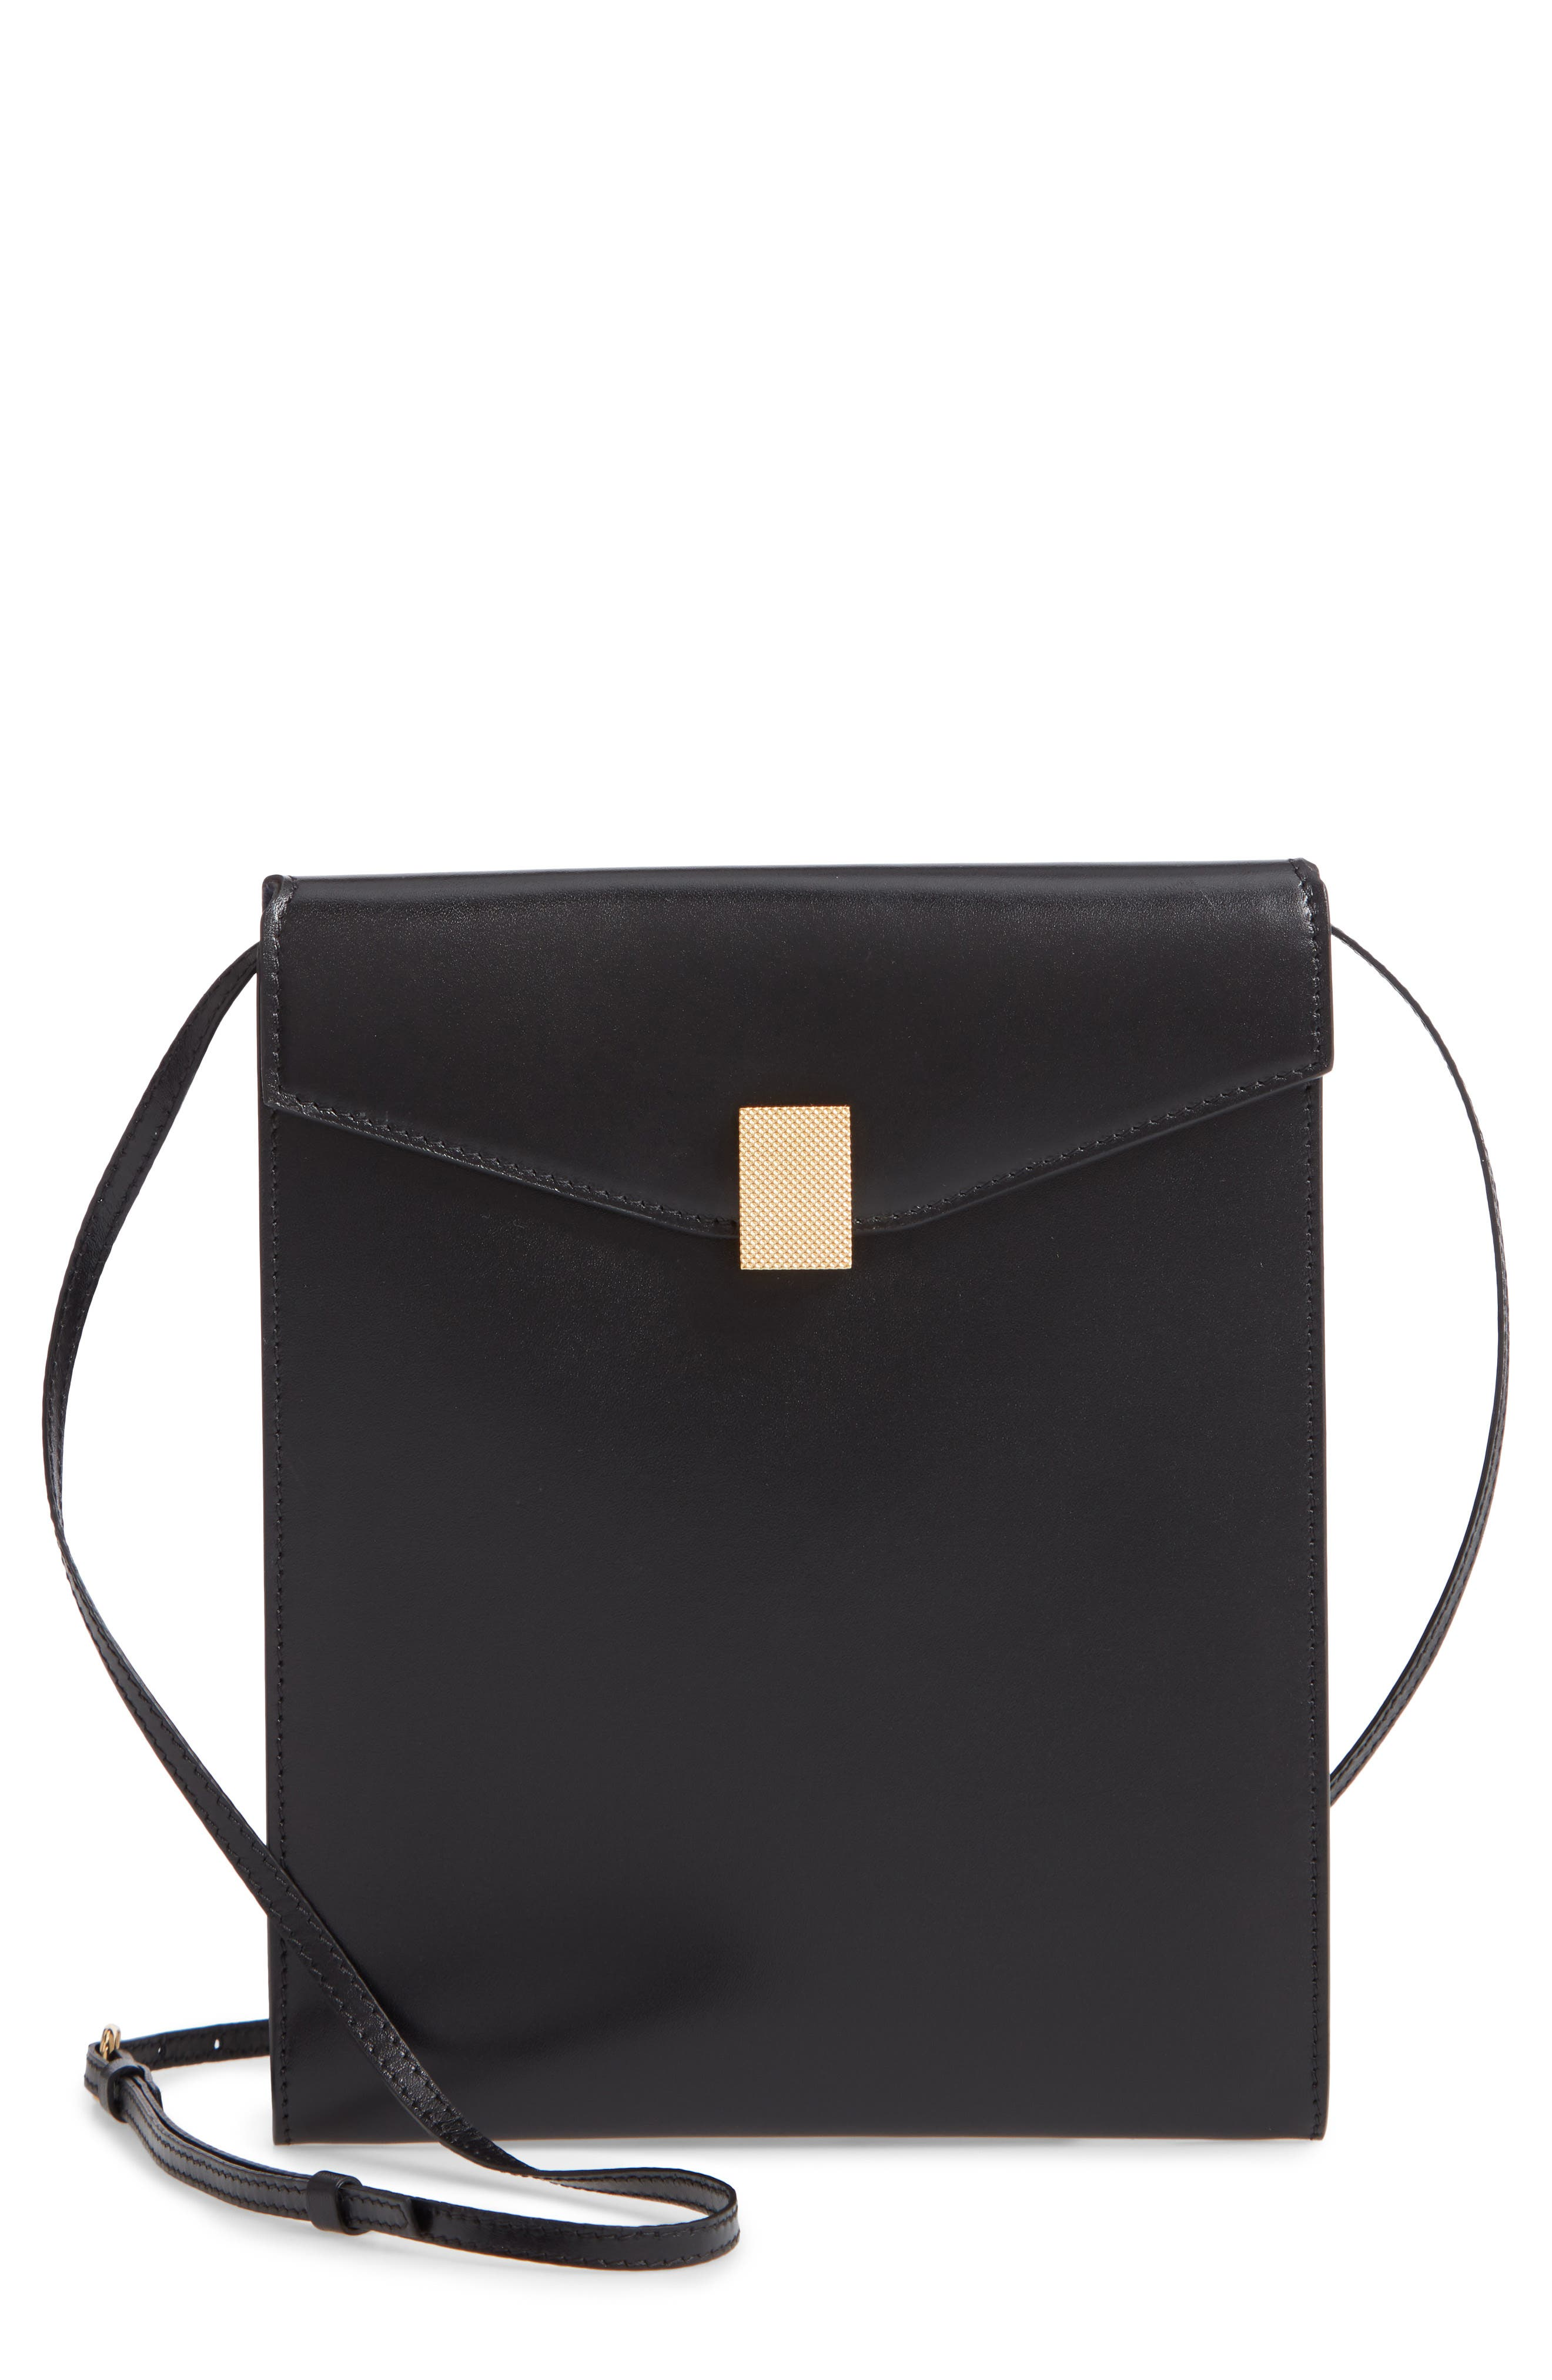 VICTORIA BECKHAM, Postino Leather Crossbody Bag, Main thumbnail 1, color, BLACK